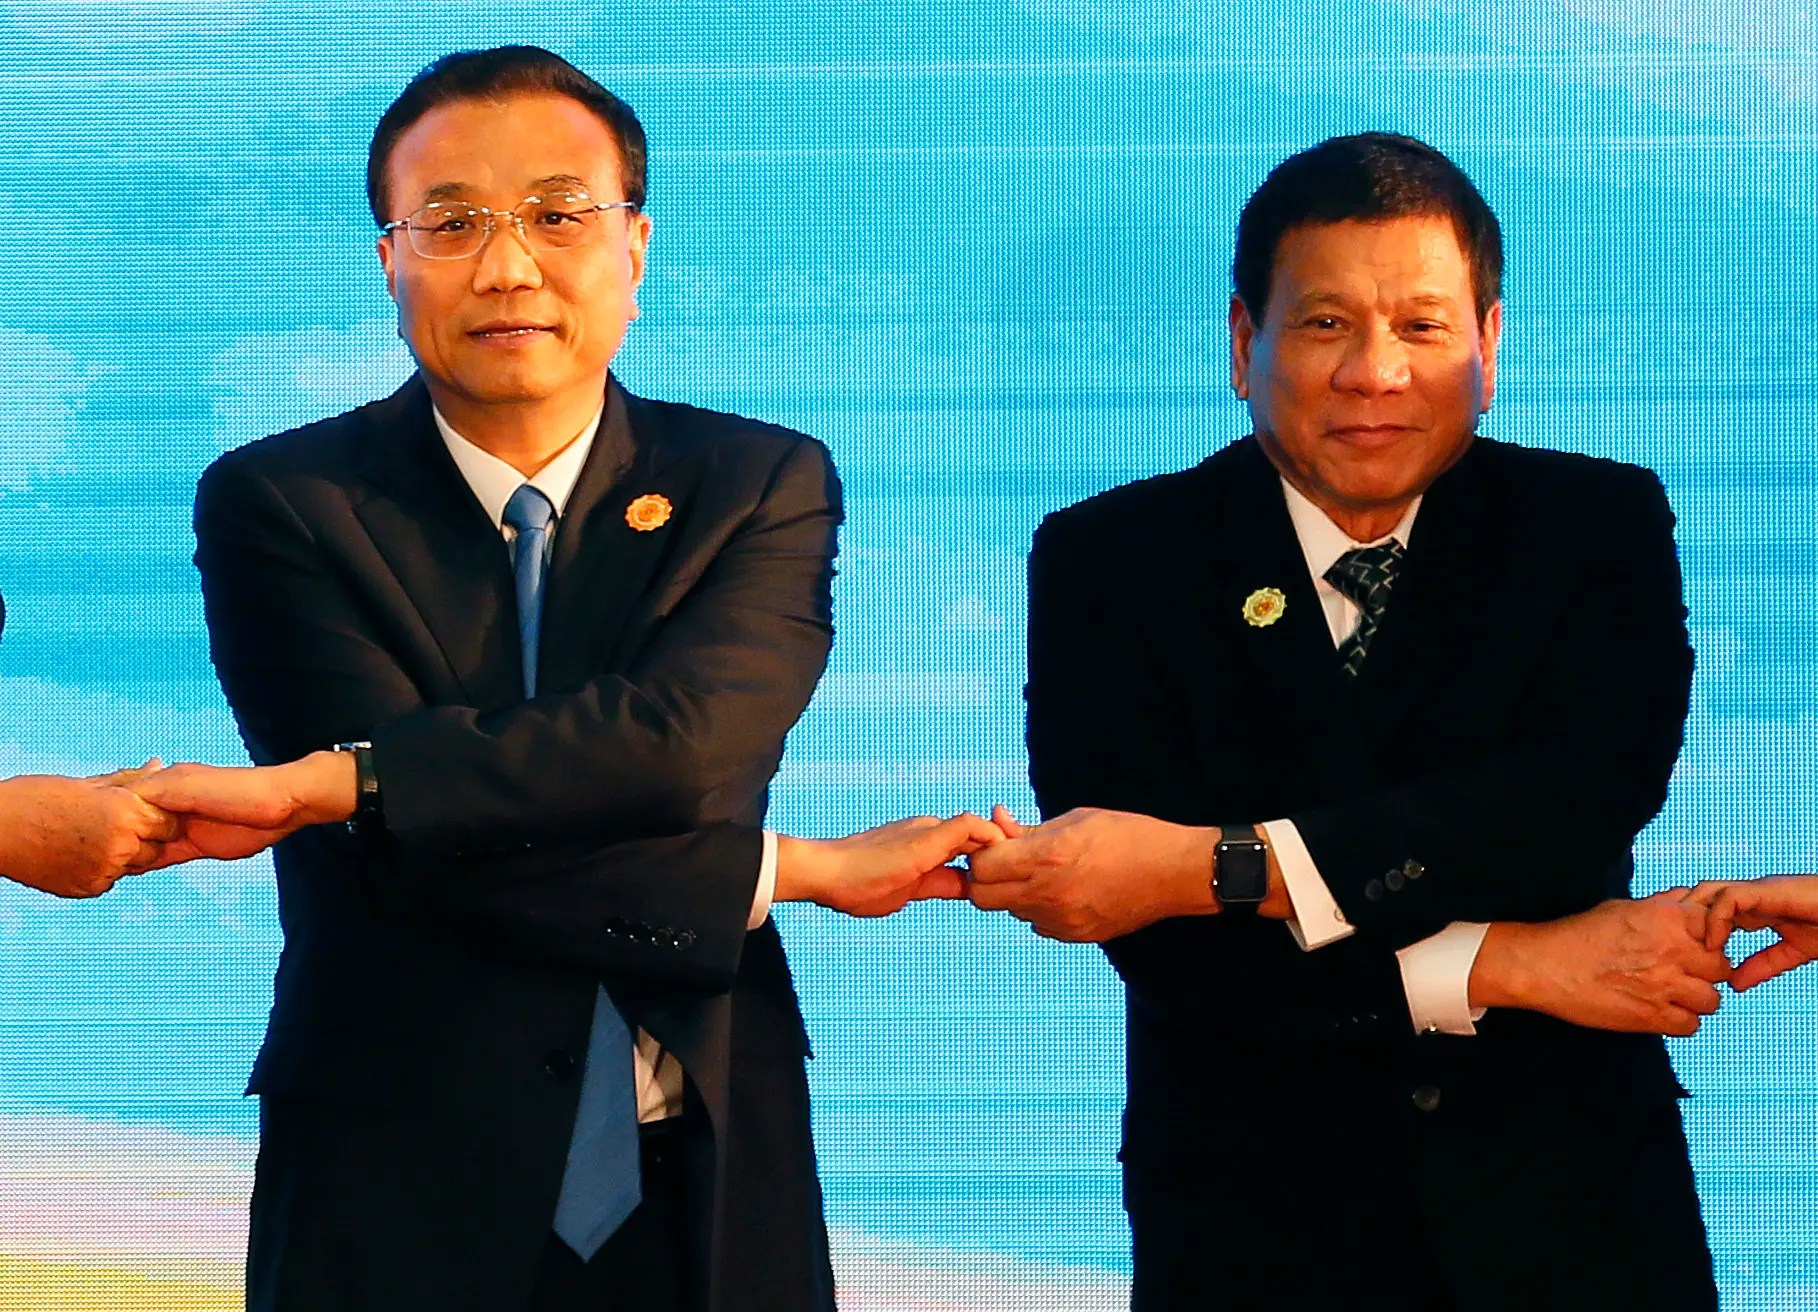 Li Keqiang and Rodrigo Duterte